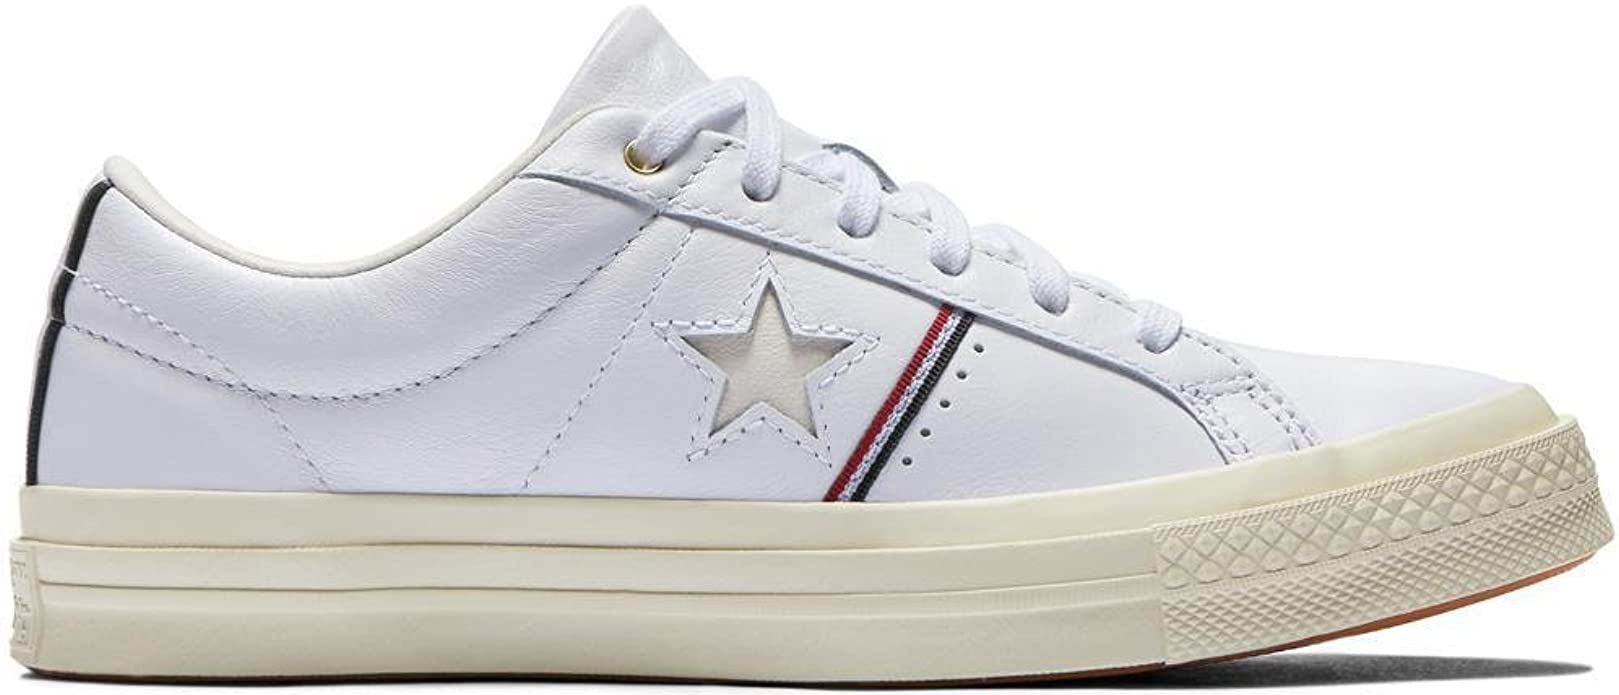 converse femme one star ox